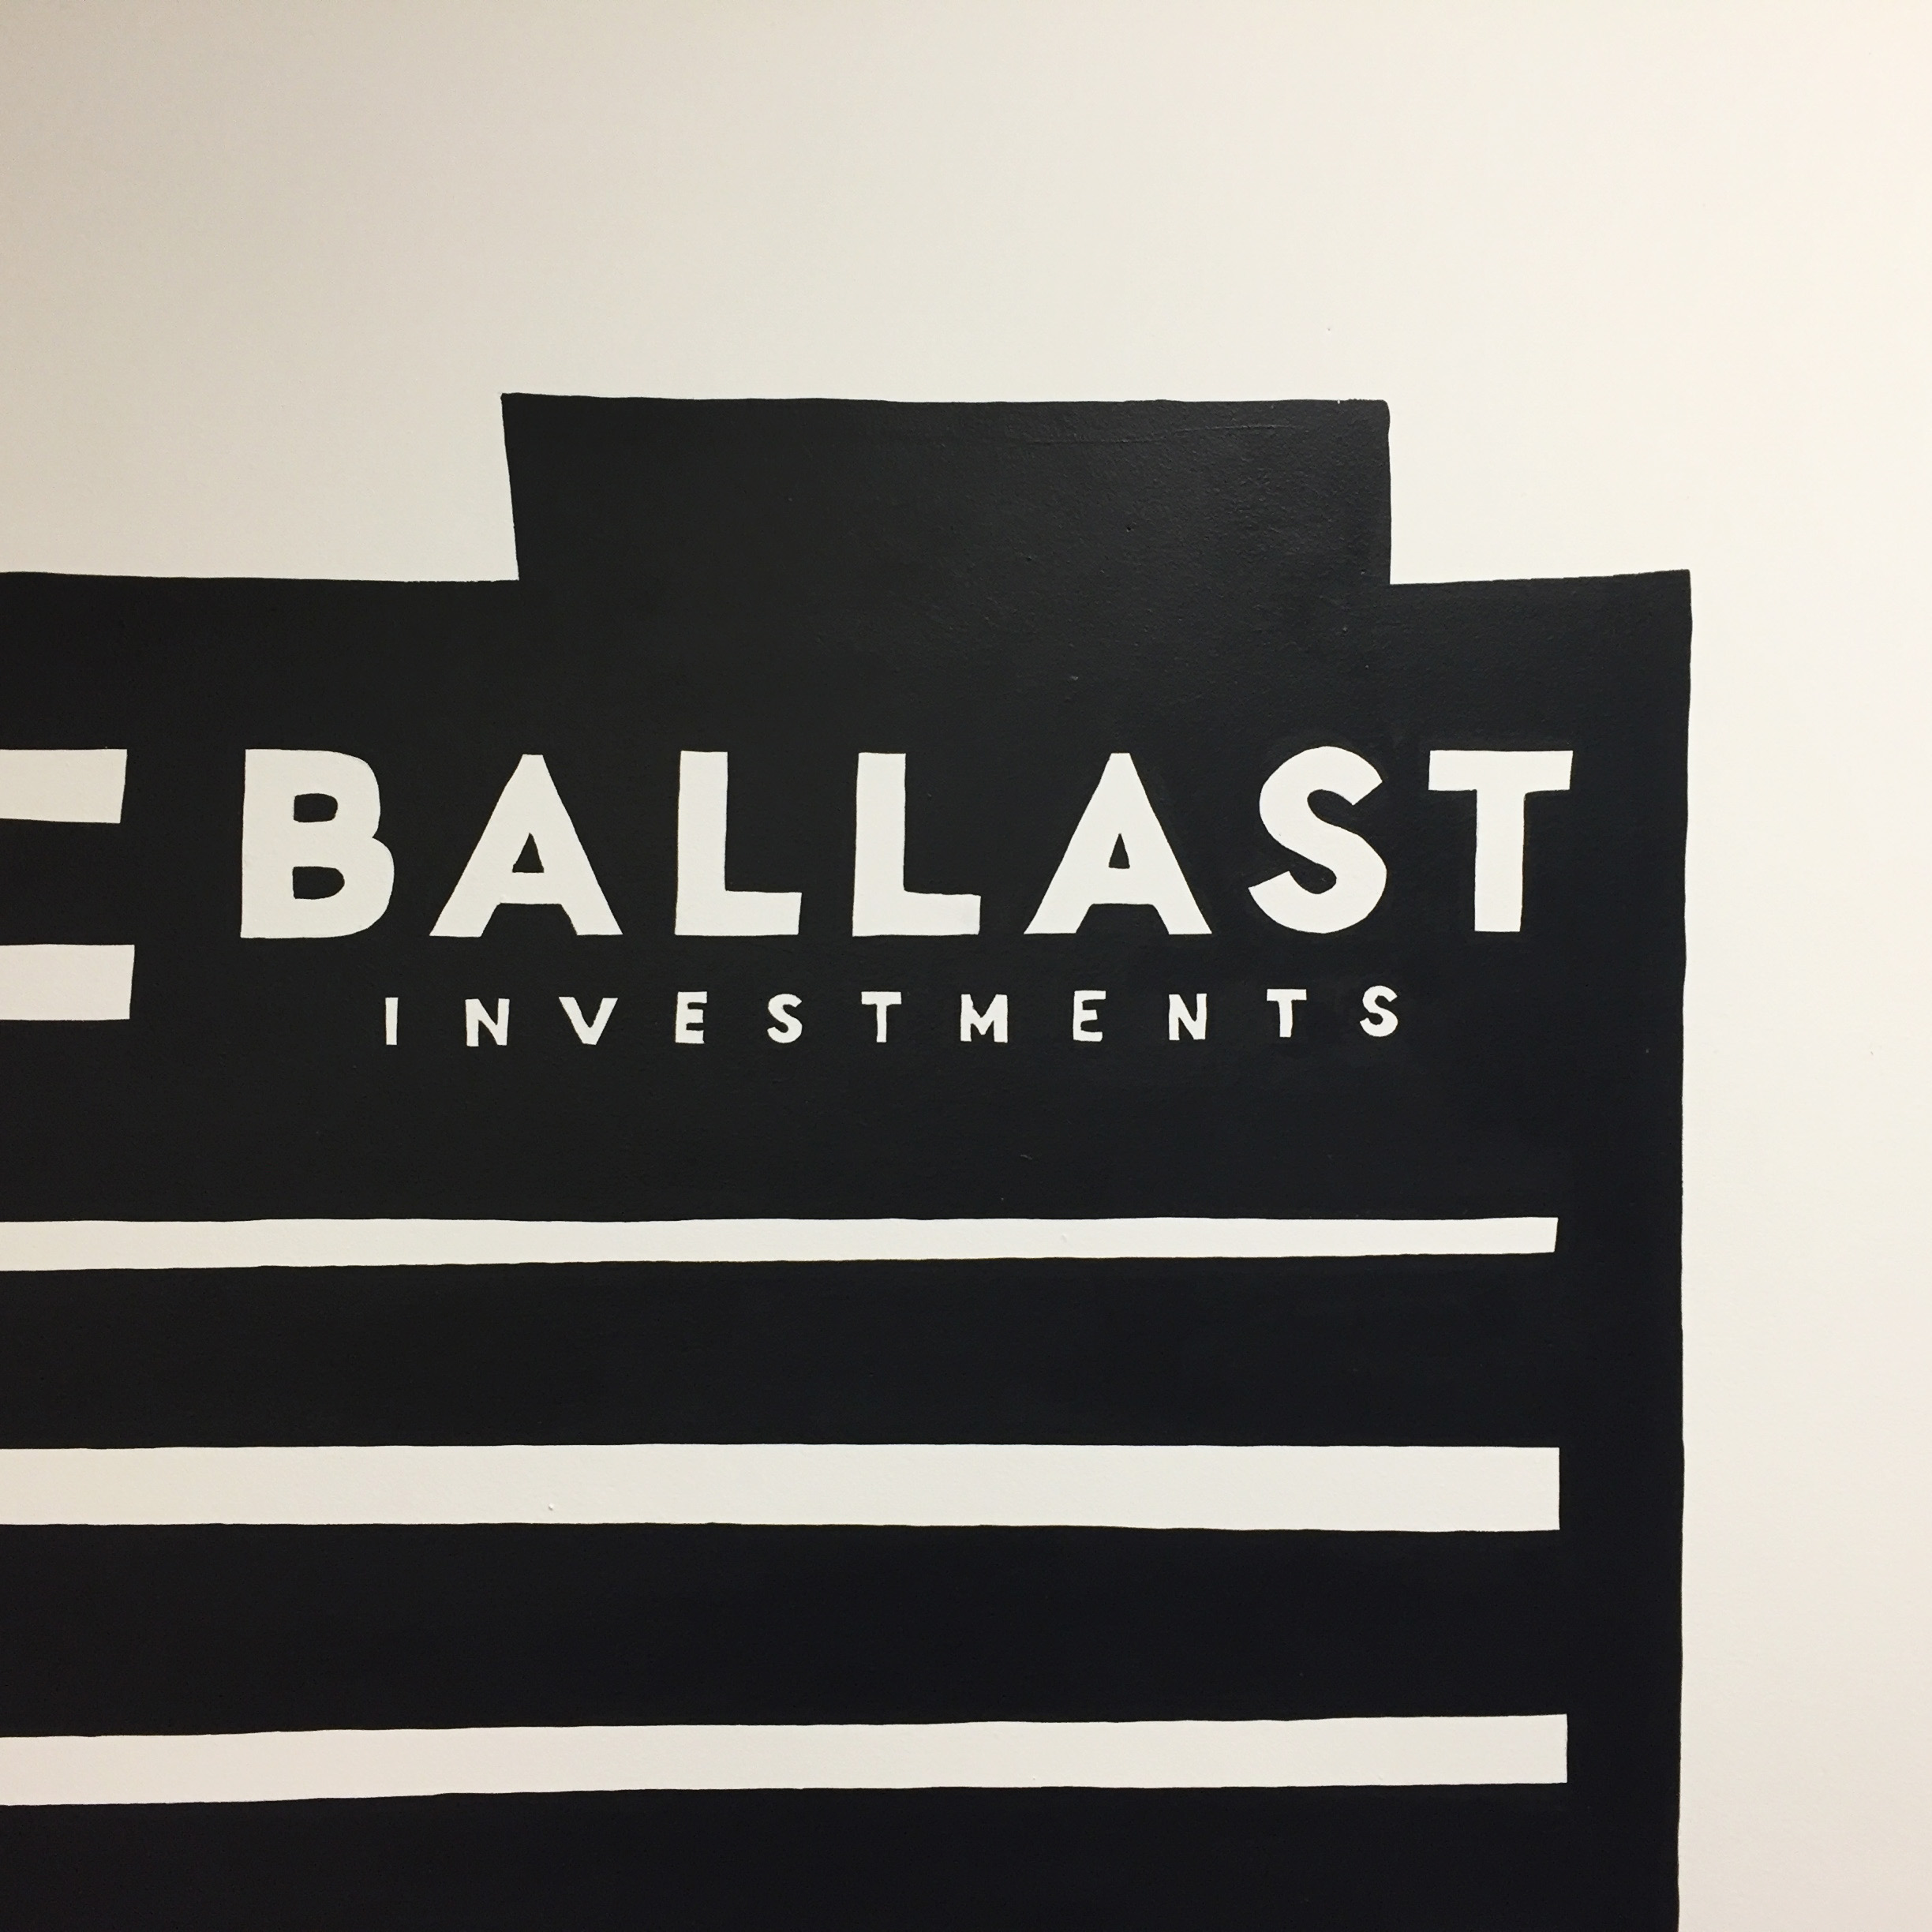 Office-commercial-mural-san-francisco-ballast-wall-and-wall-mural-company_003.jpeg